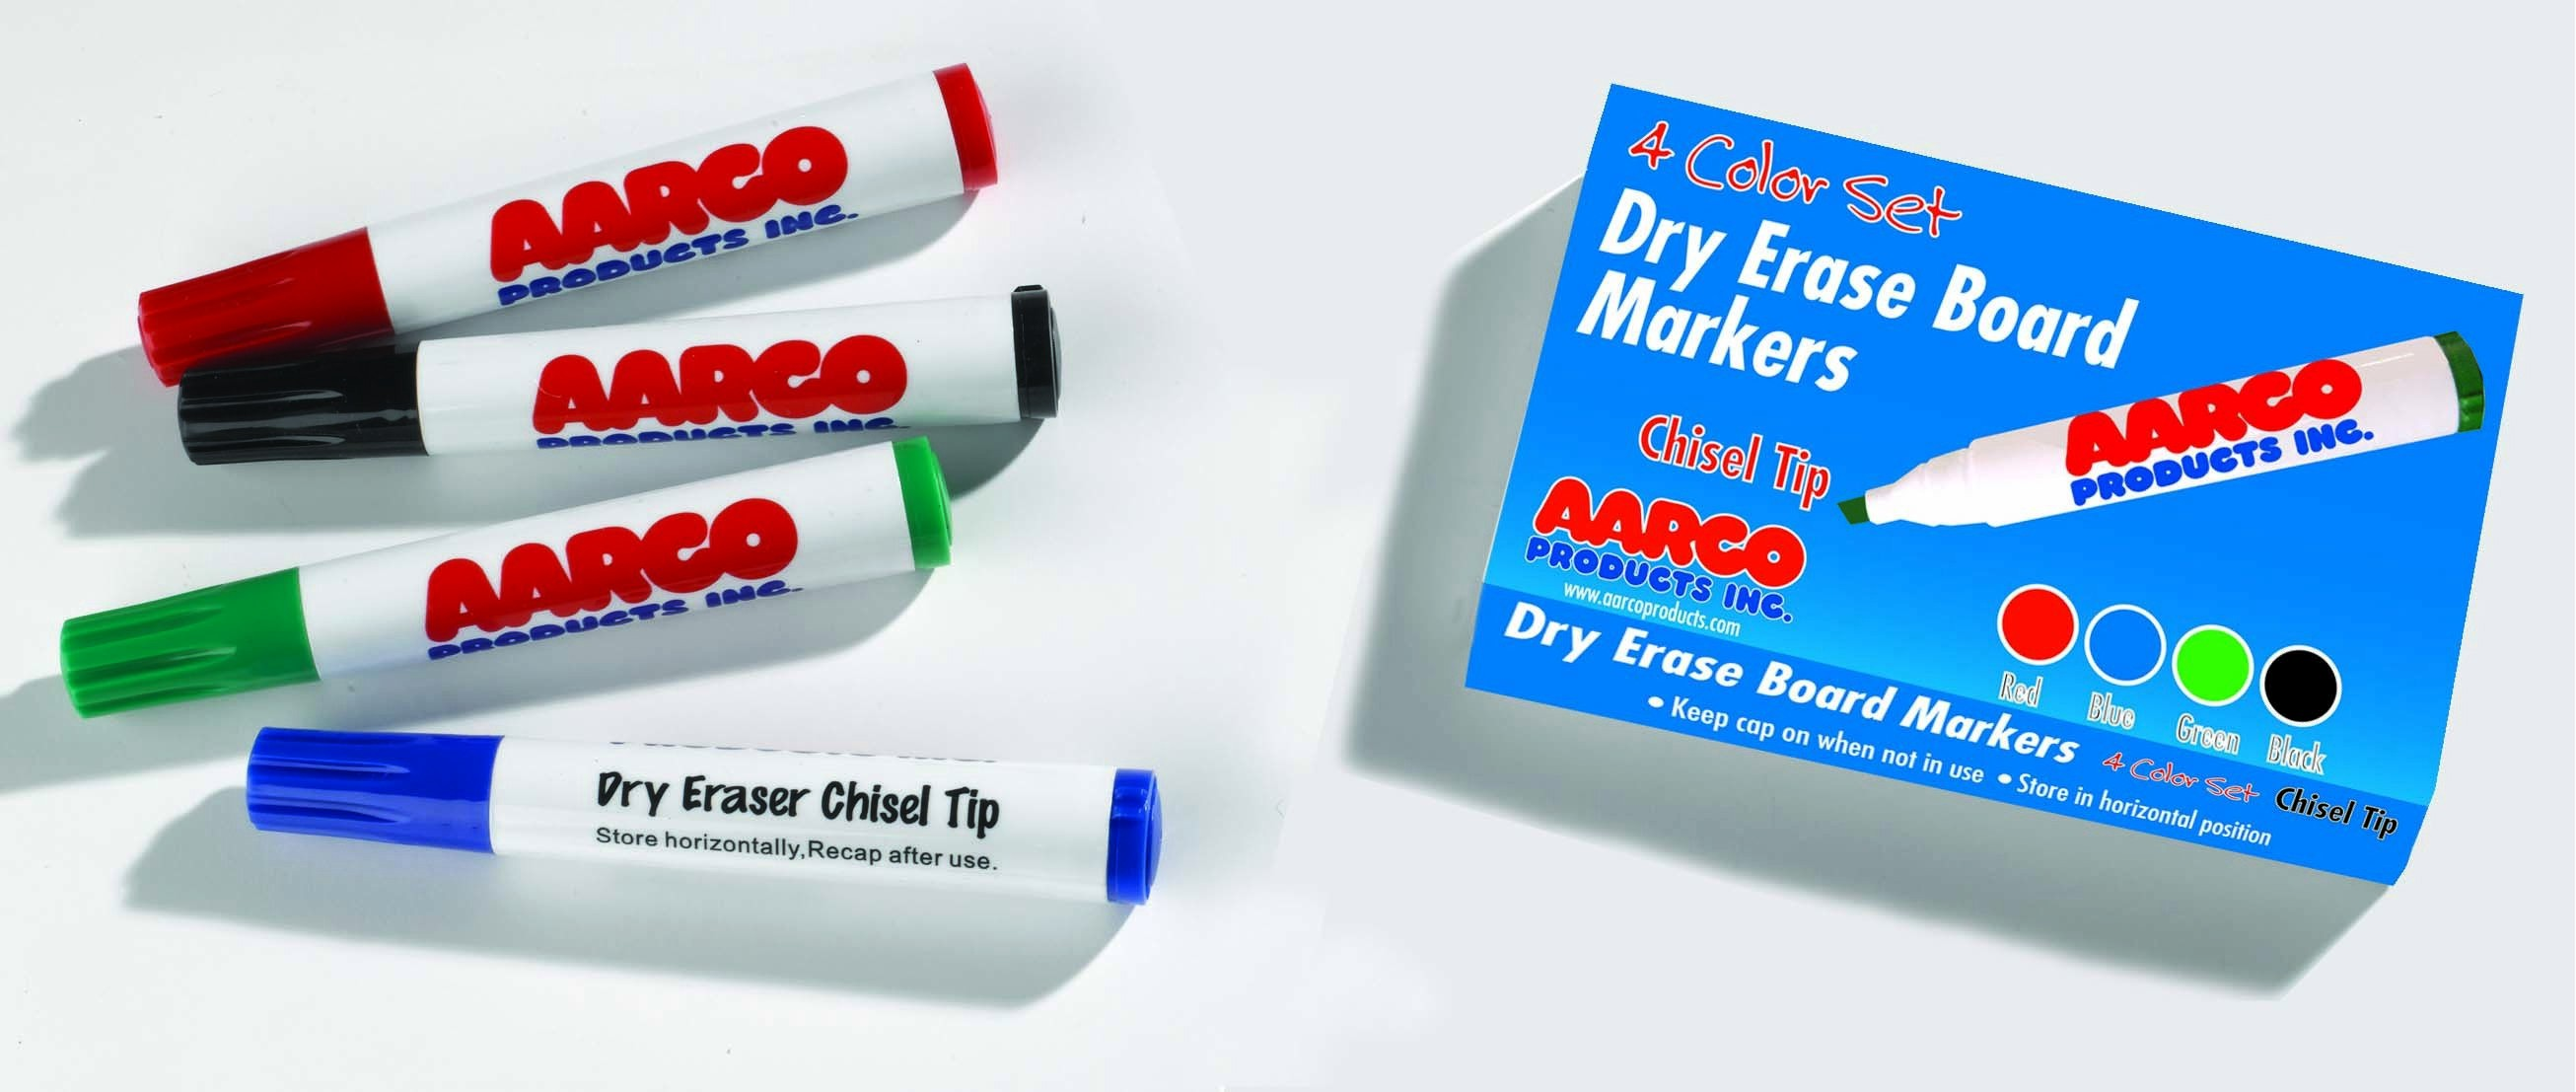 Aarco Products M-4 Reduced Odor Dry Erase Markers